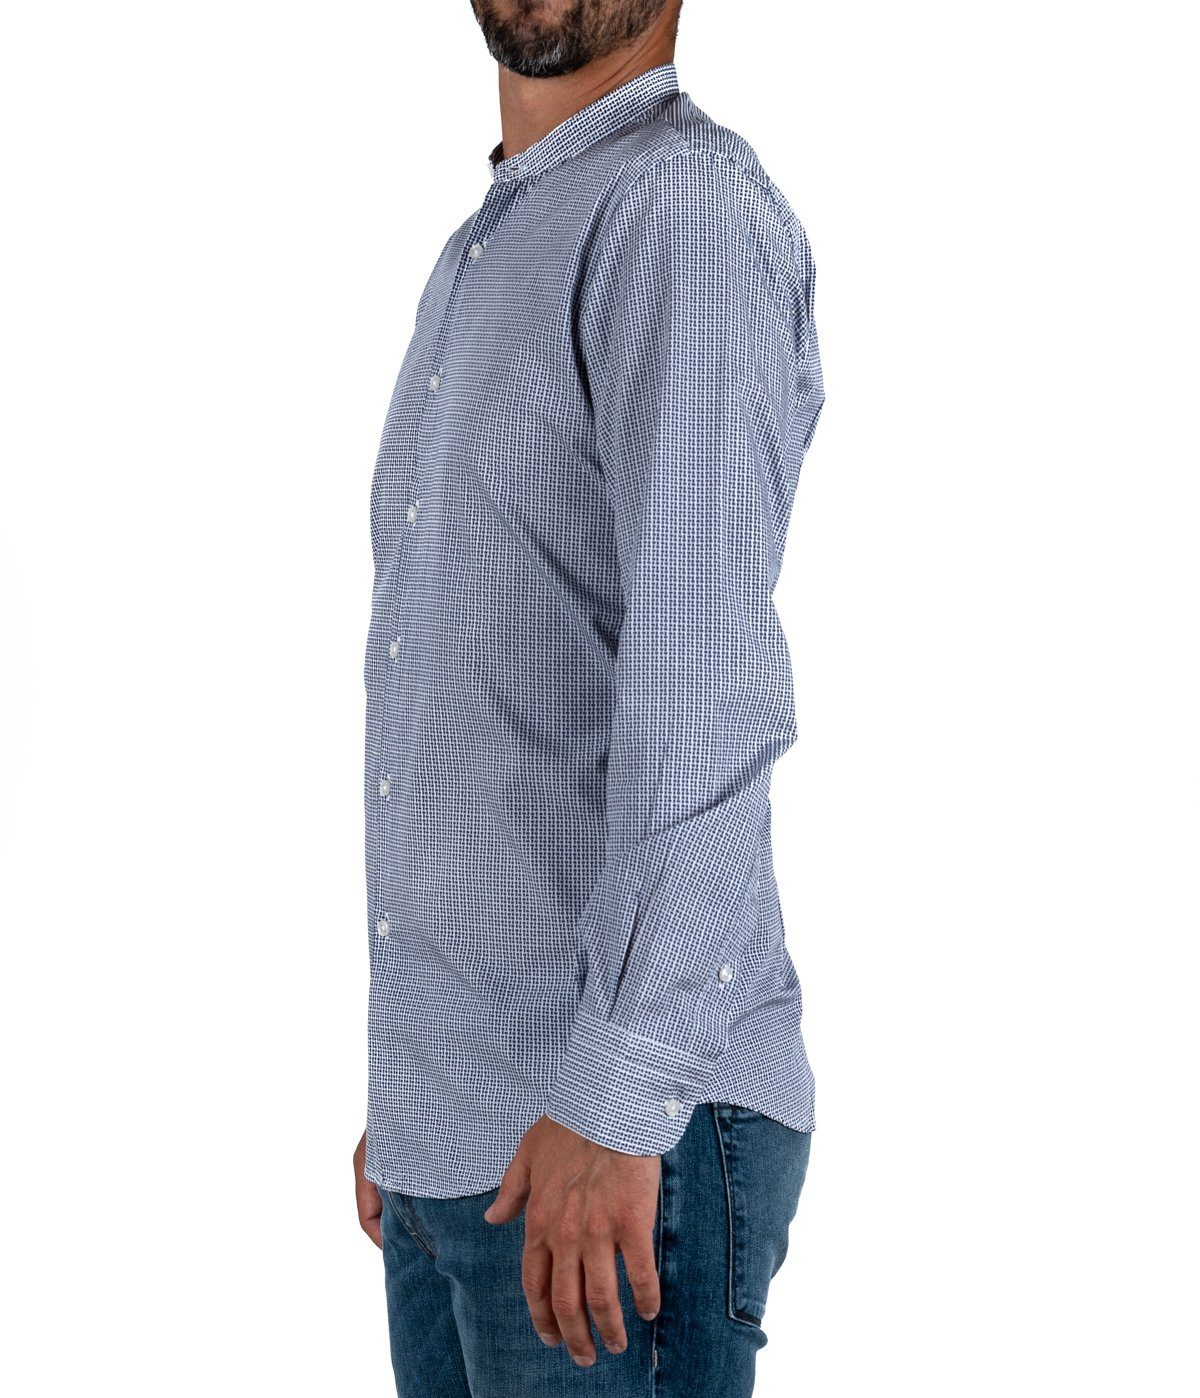 uk availability 96502 0c2f6 CAMICIA UOMO MARCUS BY DELSIENA BIANCA FANTASIA BLU COLLETTO COREANA